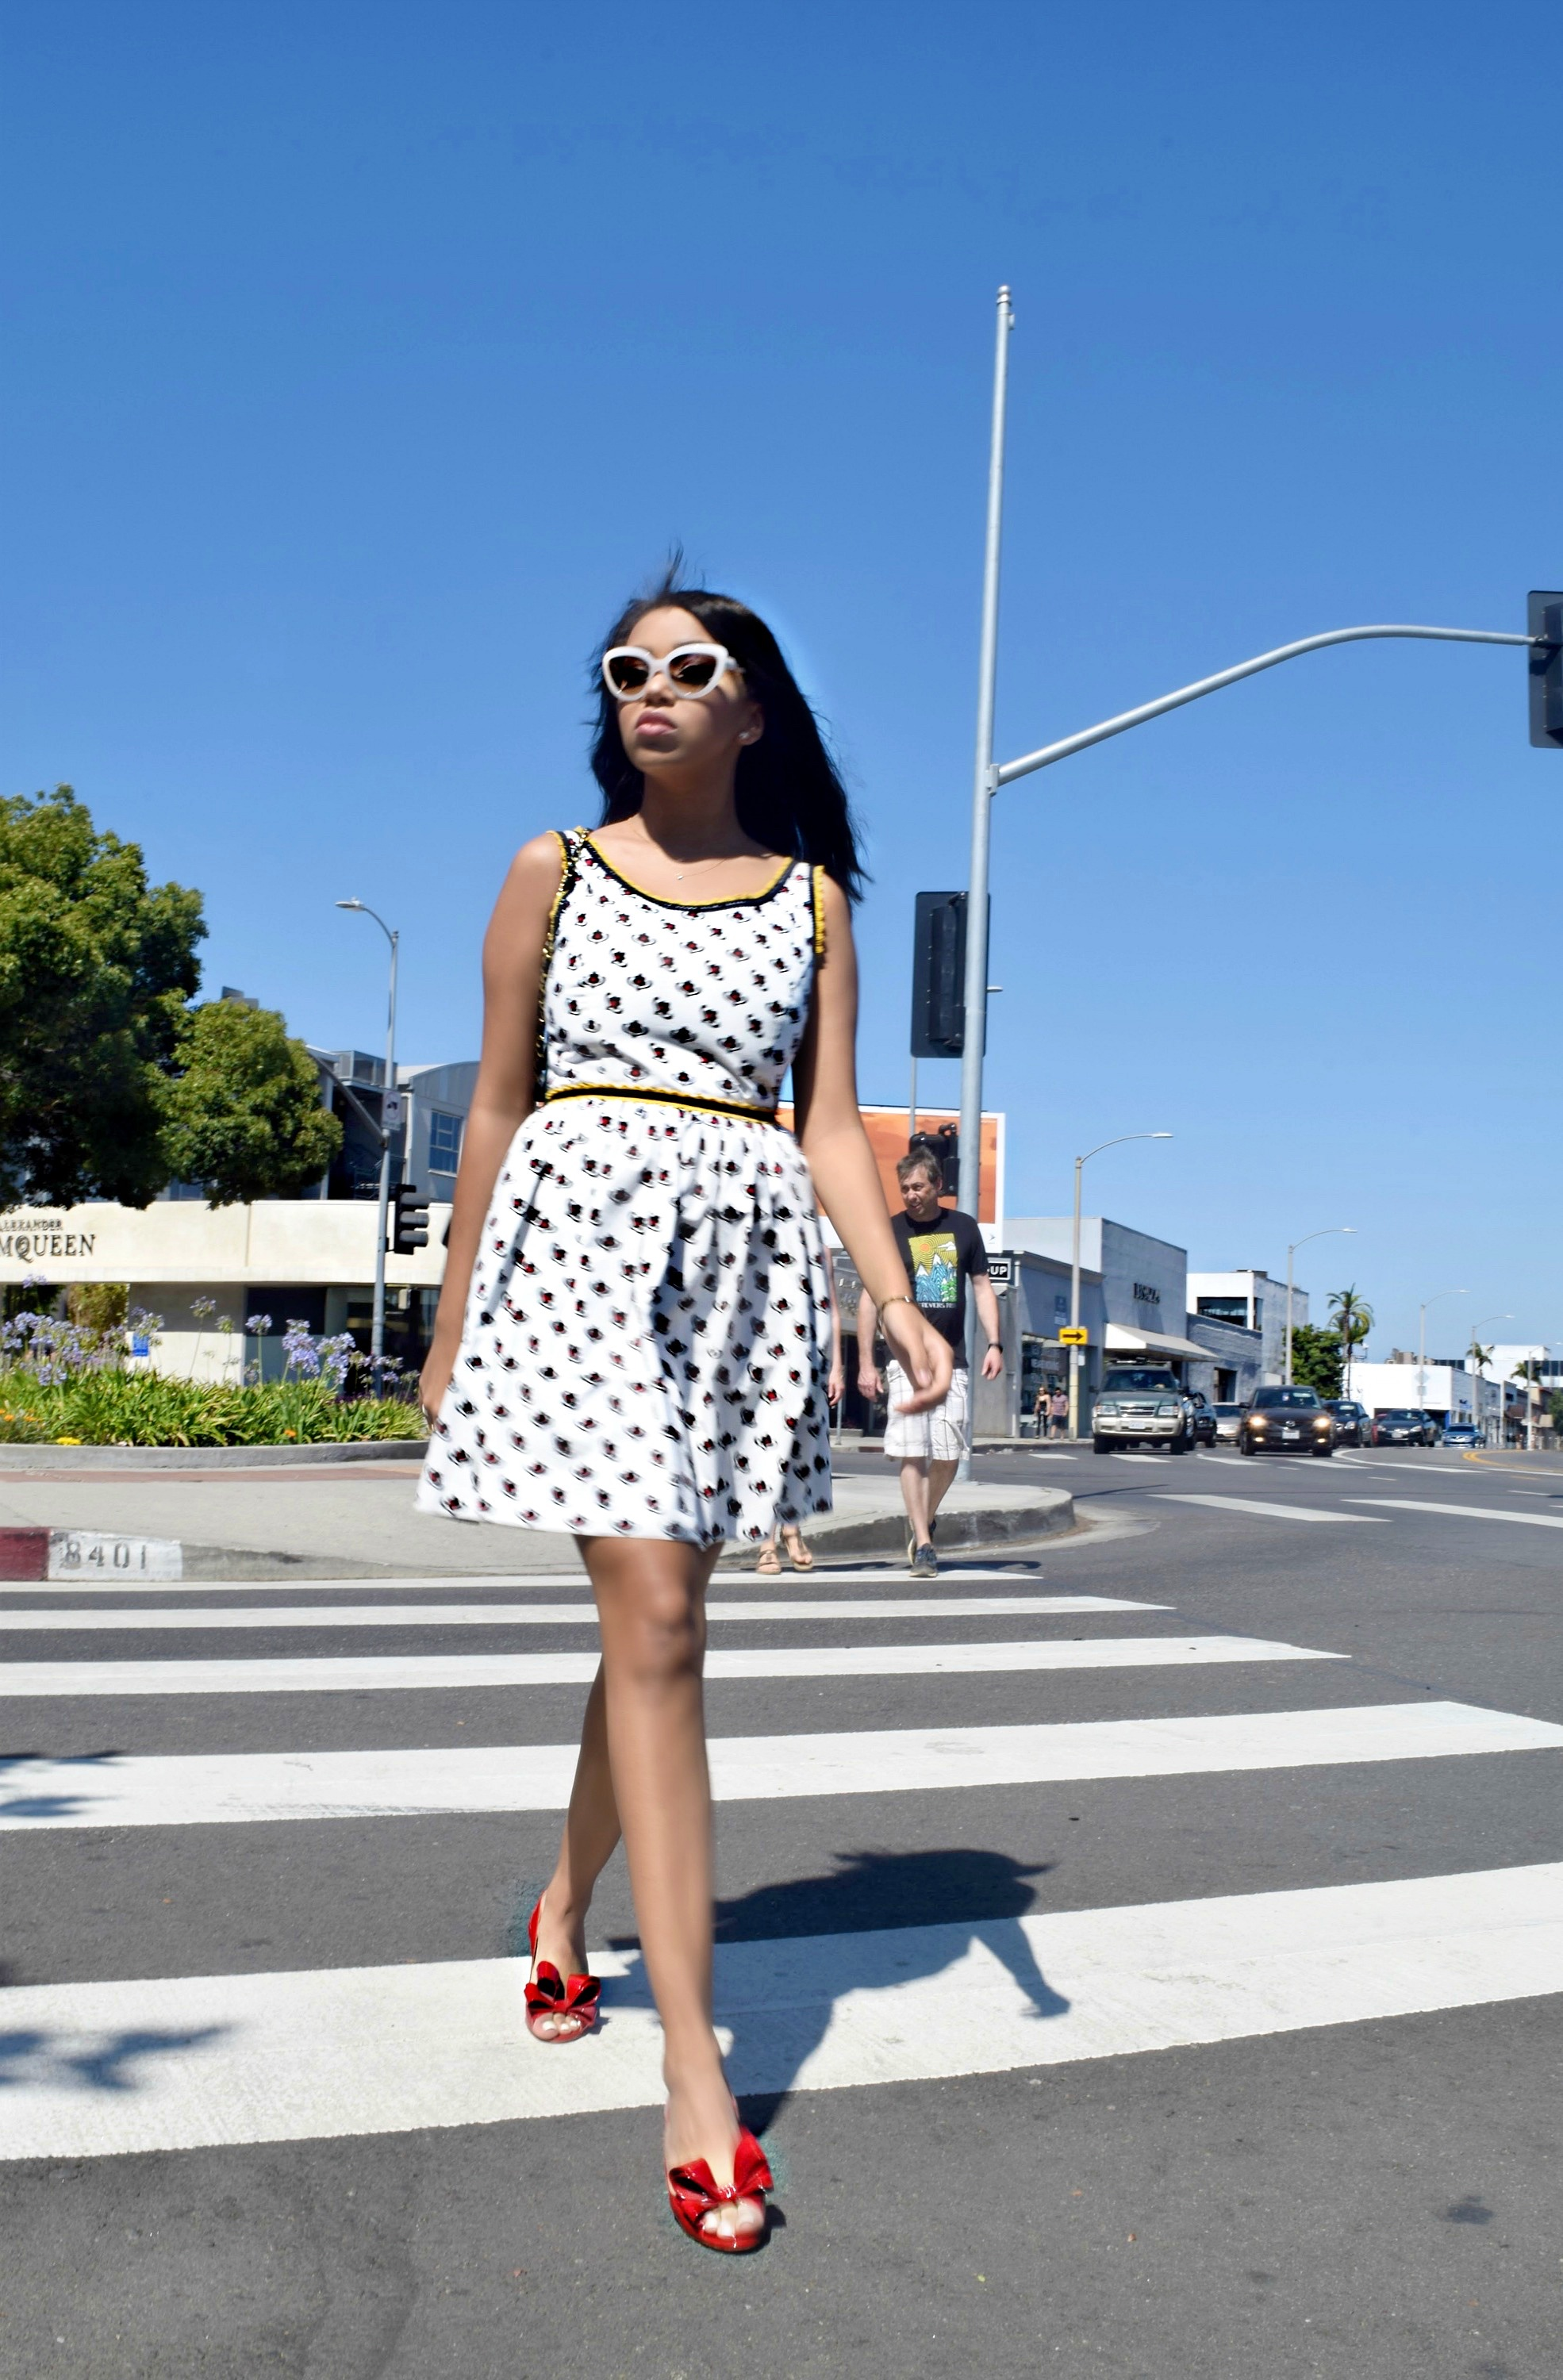 Miu Miu Dress, Los Angeles Spring/Summer Street Style & Fashion: To Style, With Love